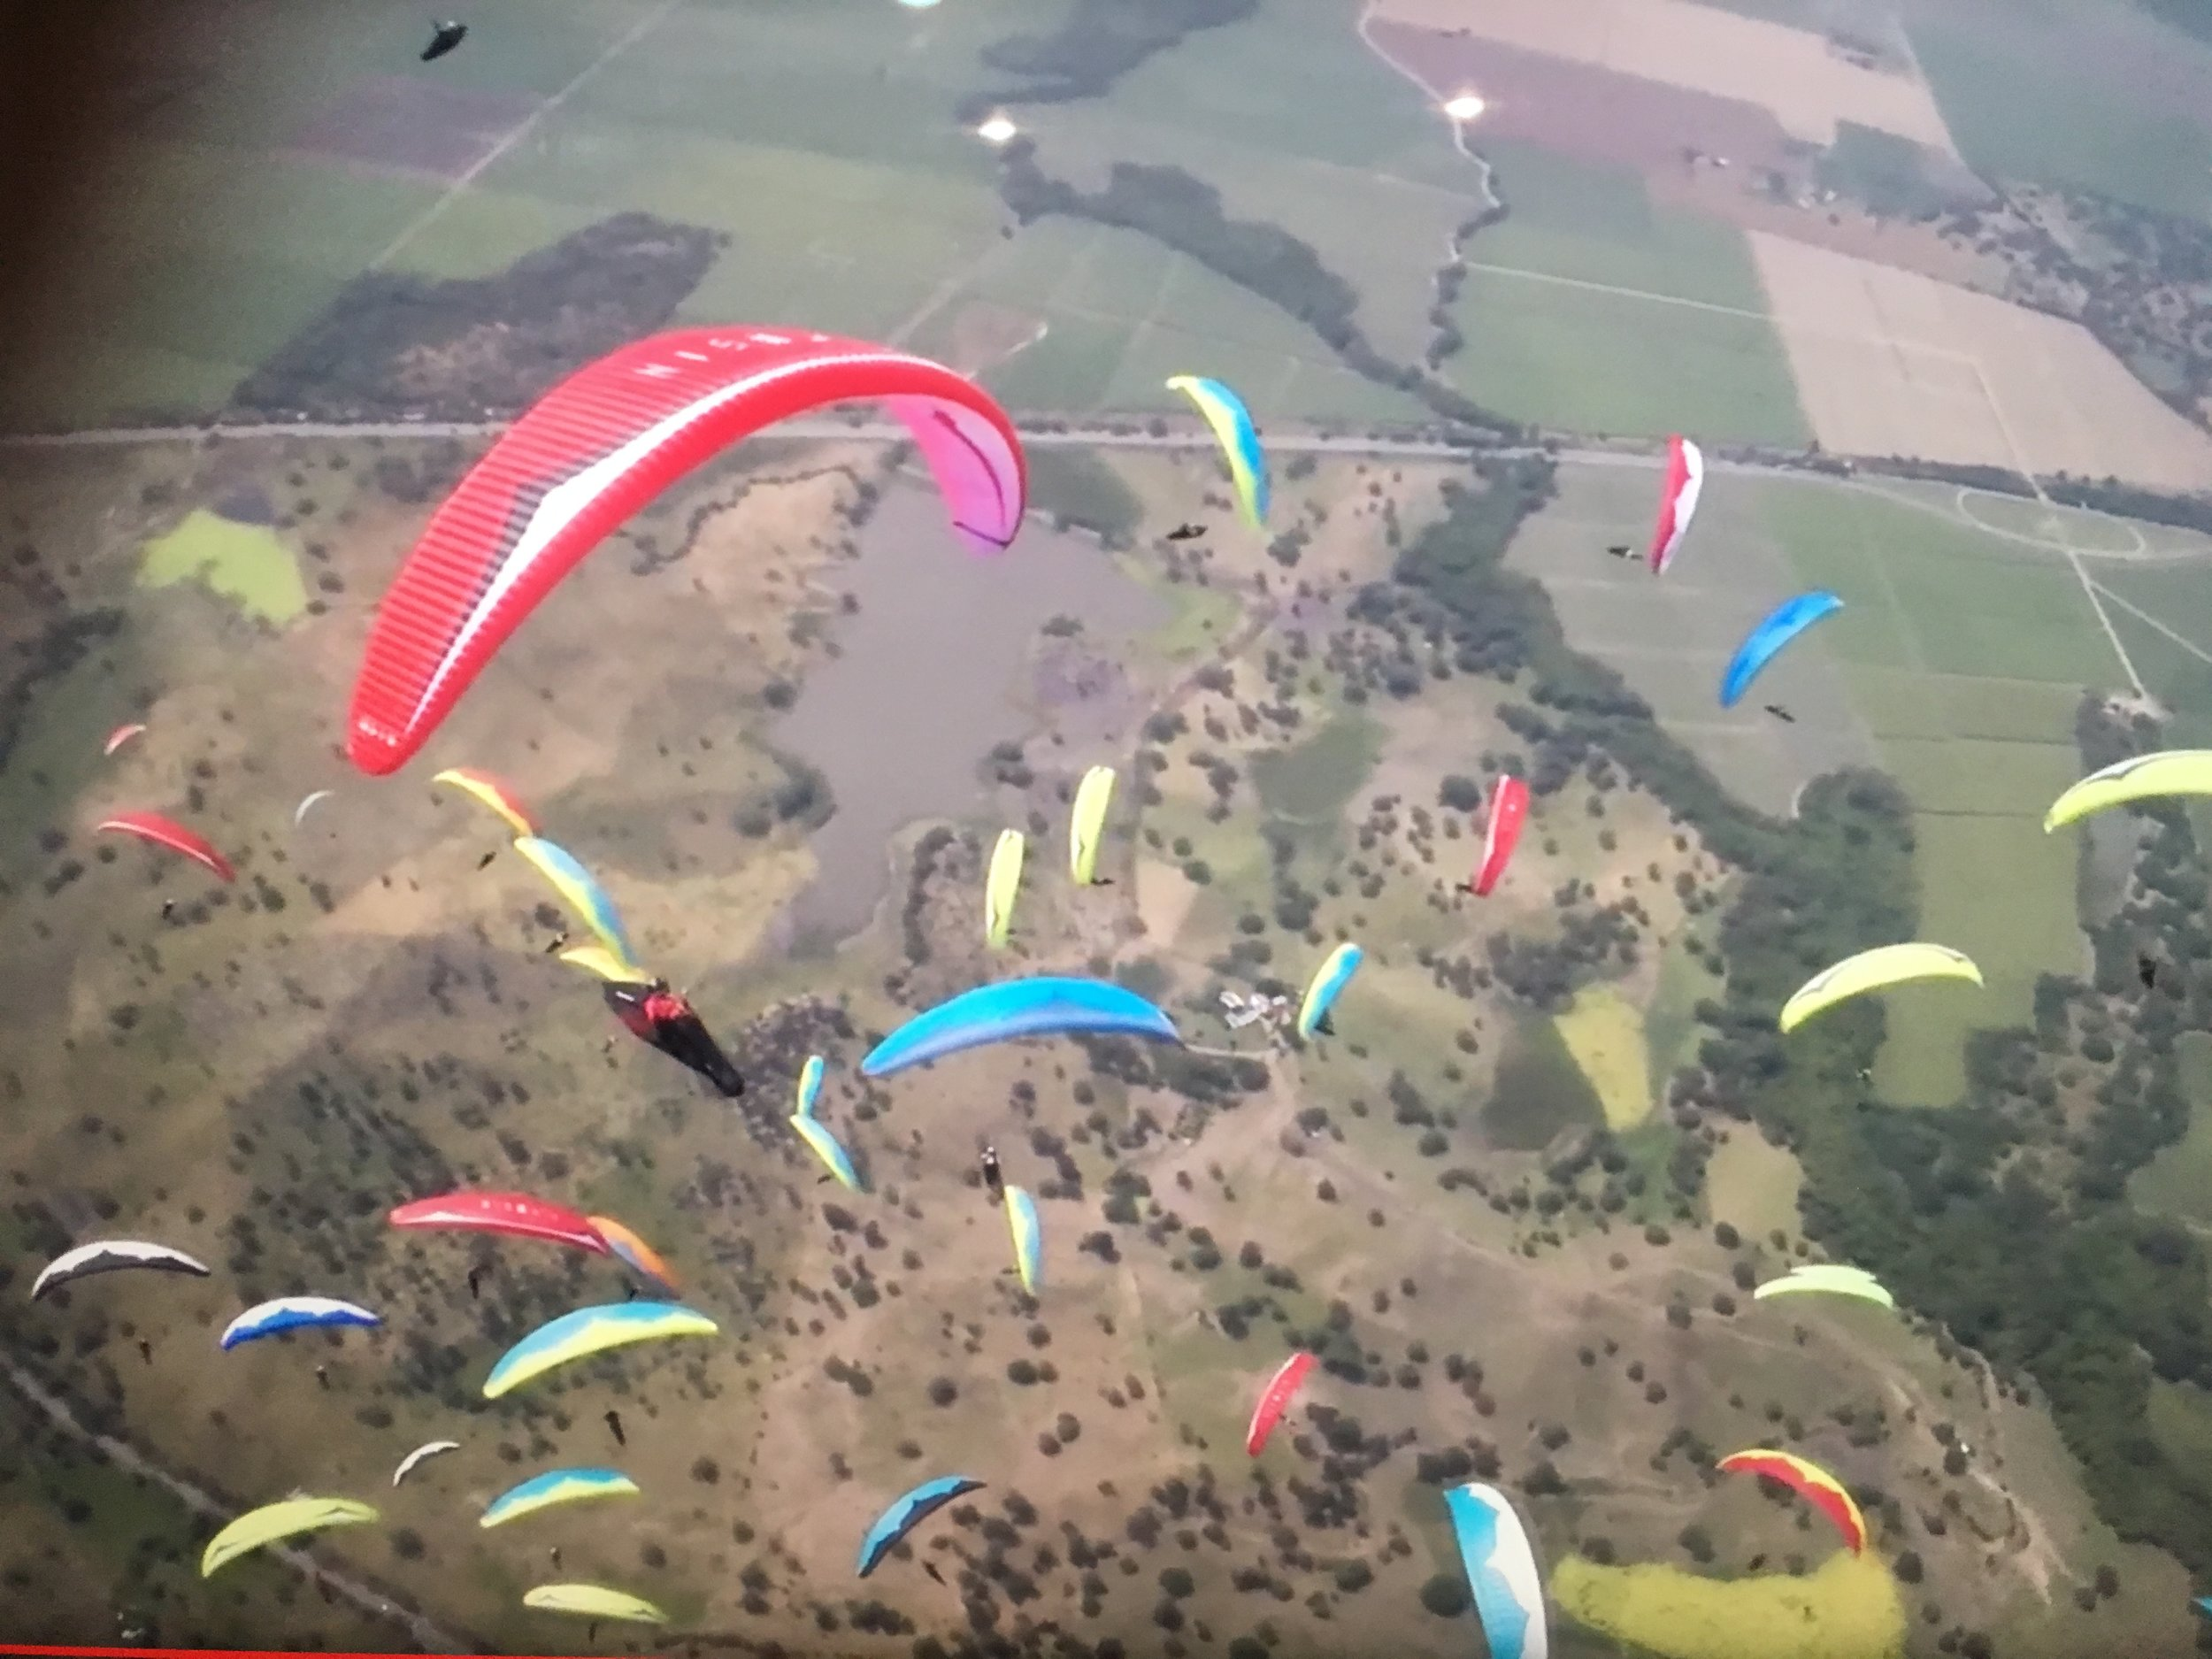 Classes - Paragliding and Paramotoring school in Pennsylvania